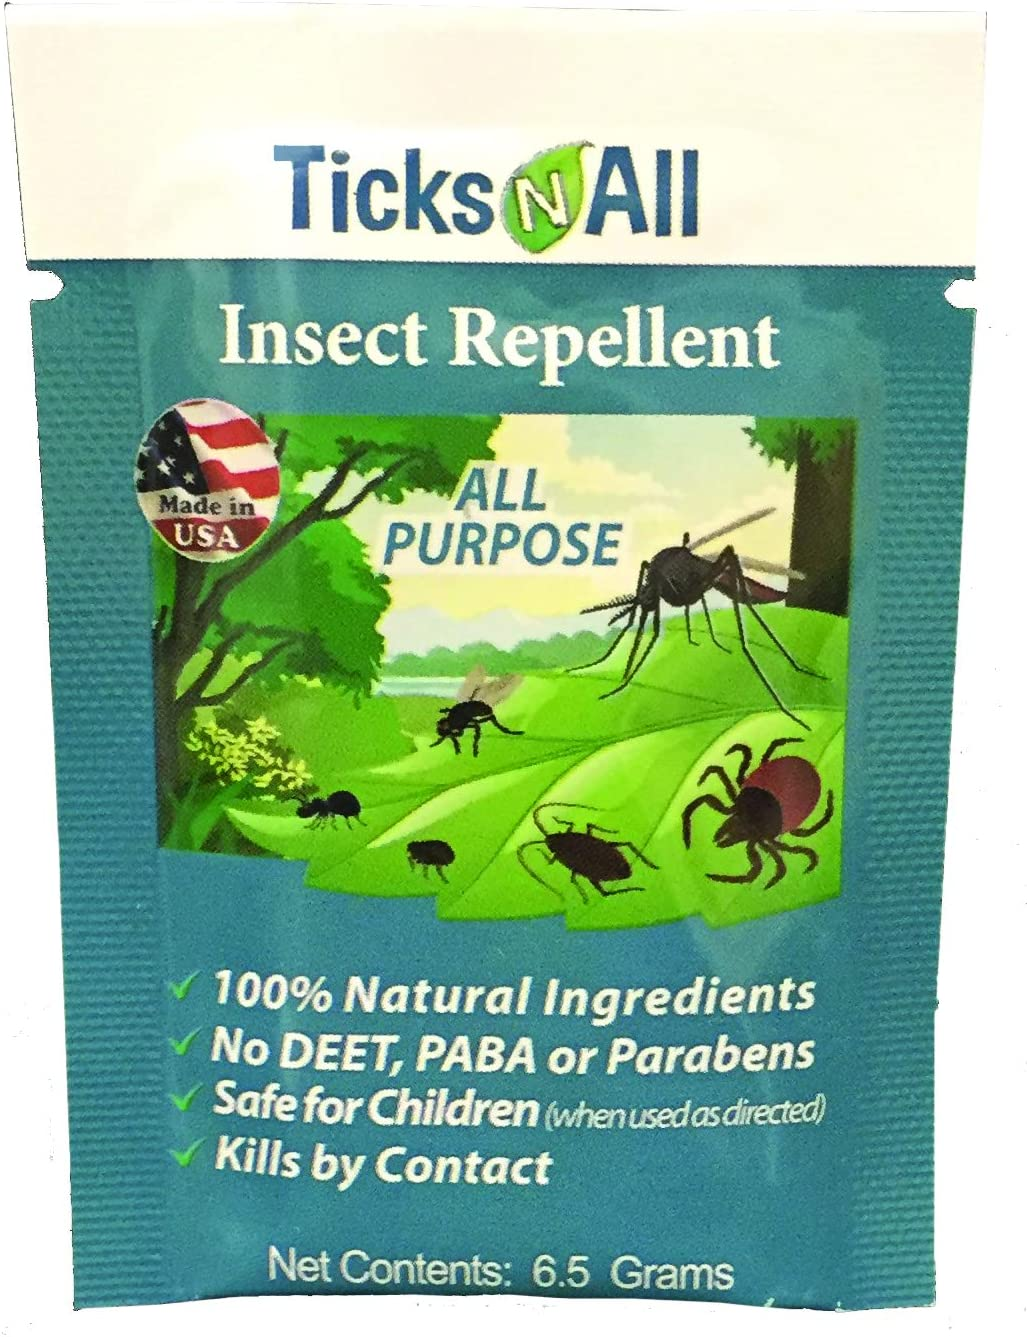 Ticks N All All Purpose Insect Repellent - All Natural Tick Repellent Wipes - Individually Wrapped Wipes [50 Count]